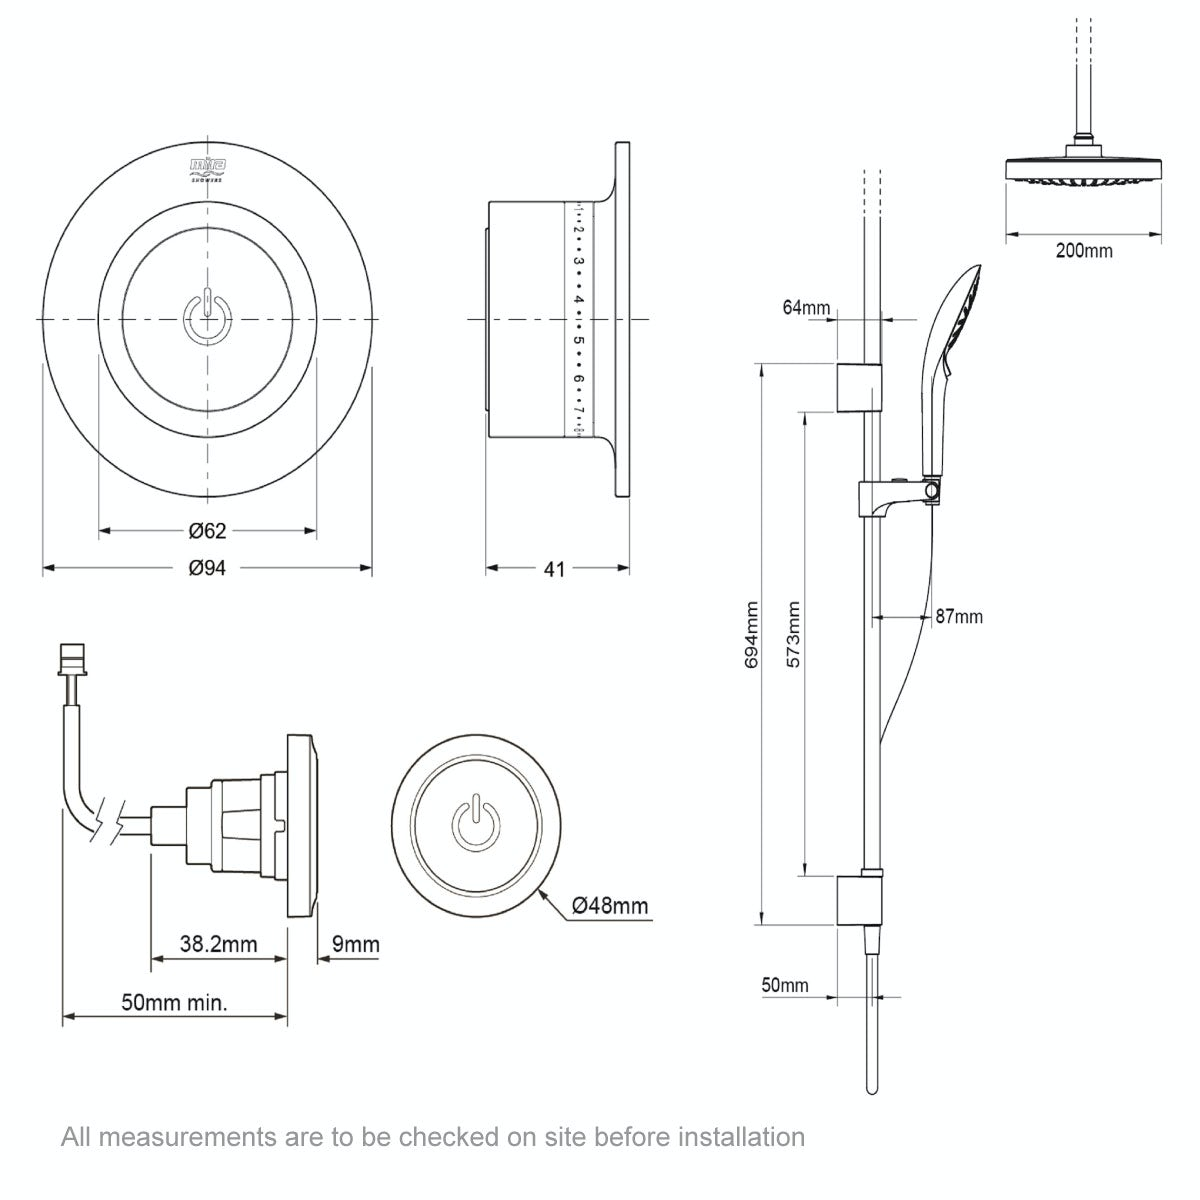 Dimensions for Mira Mode dual ceiling fed digital shower pumped